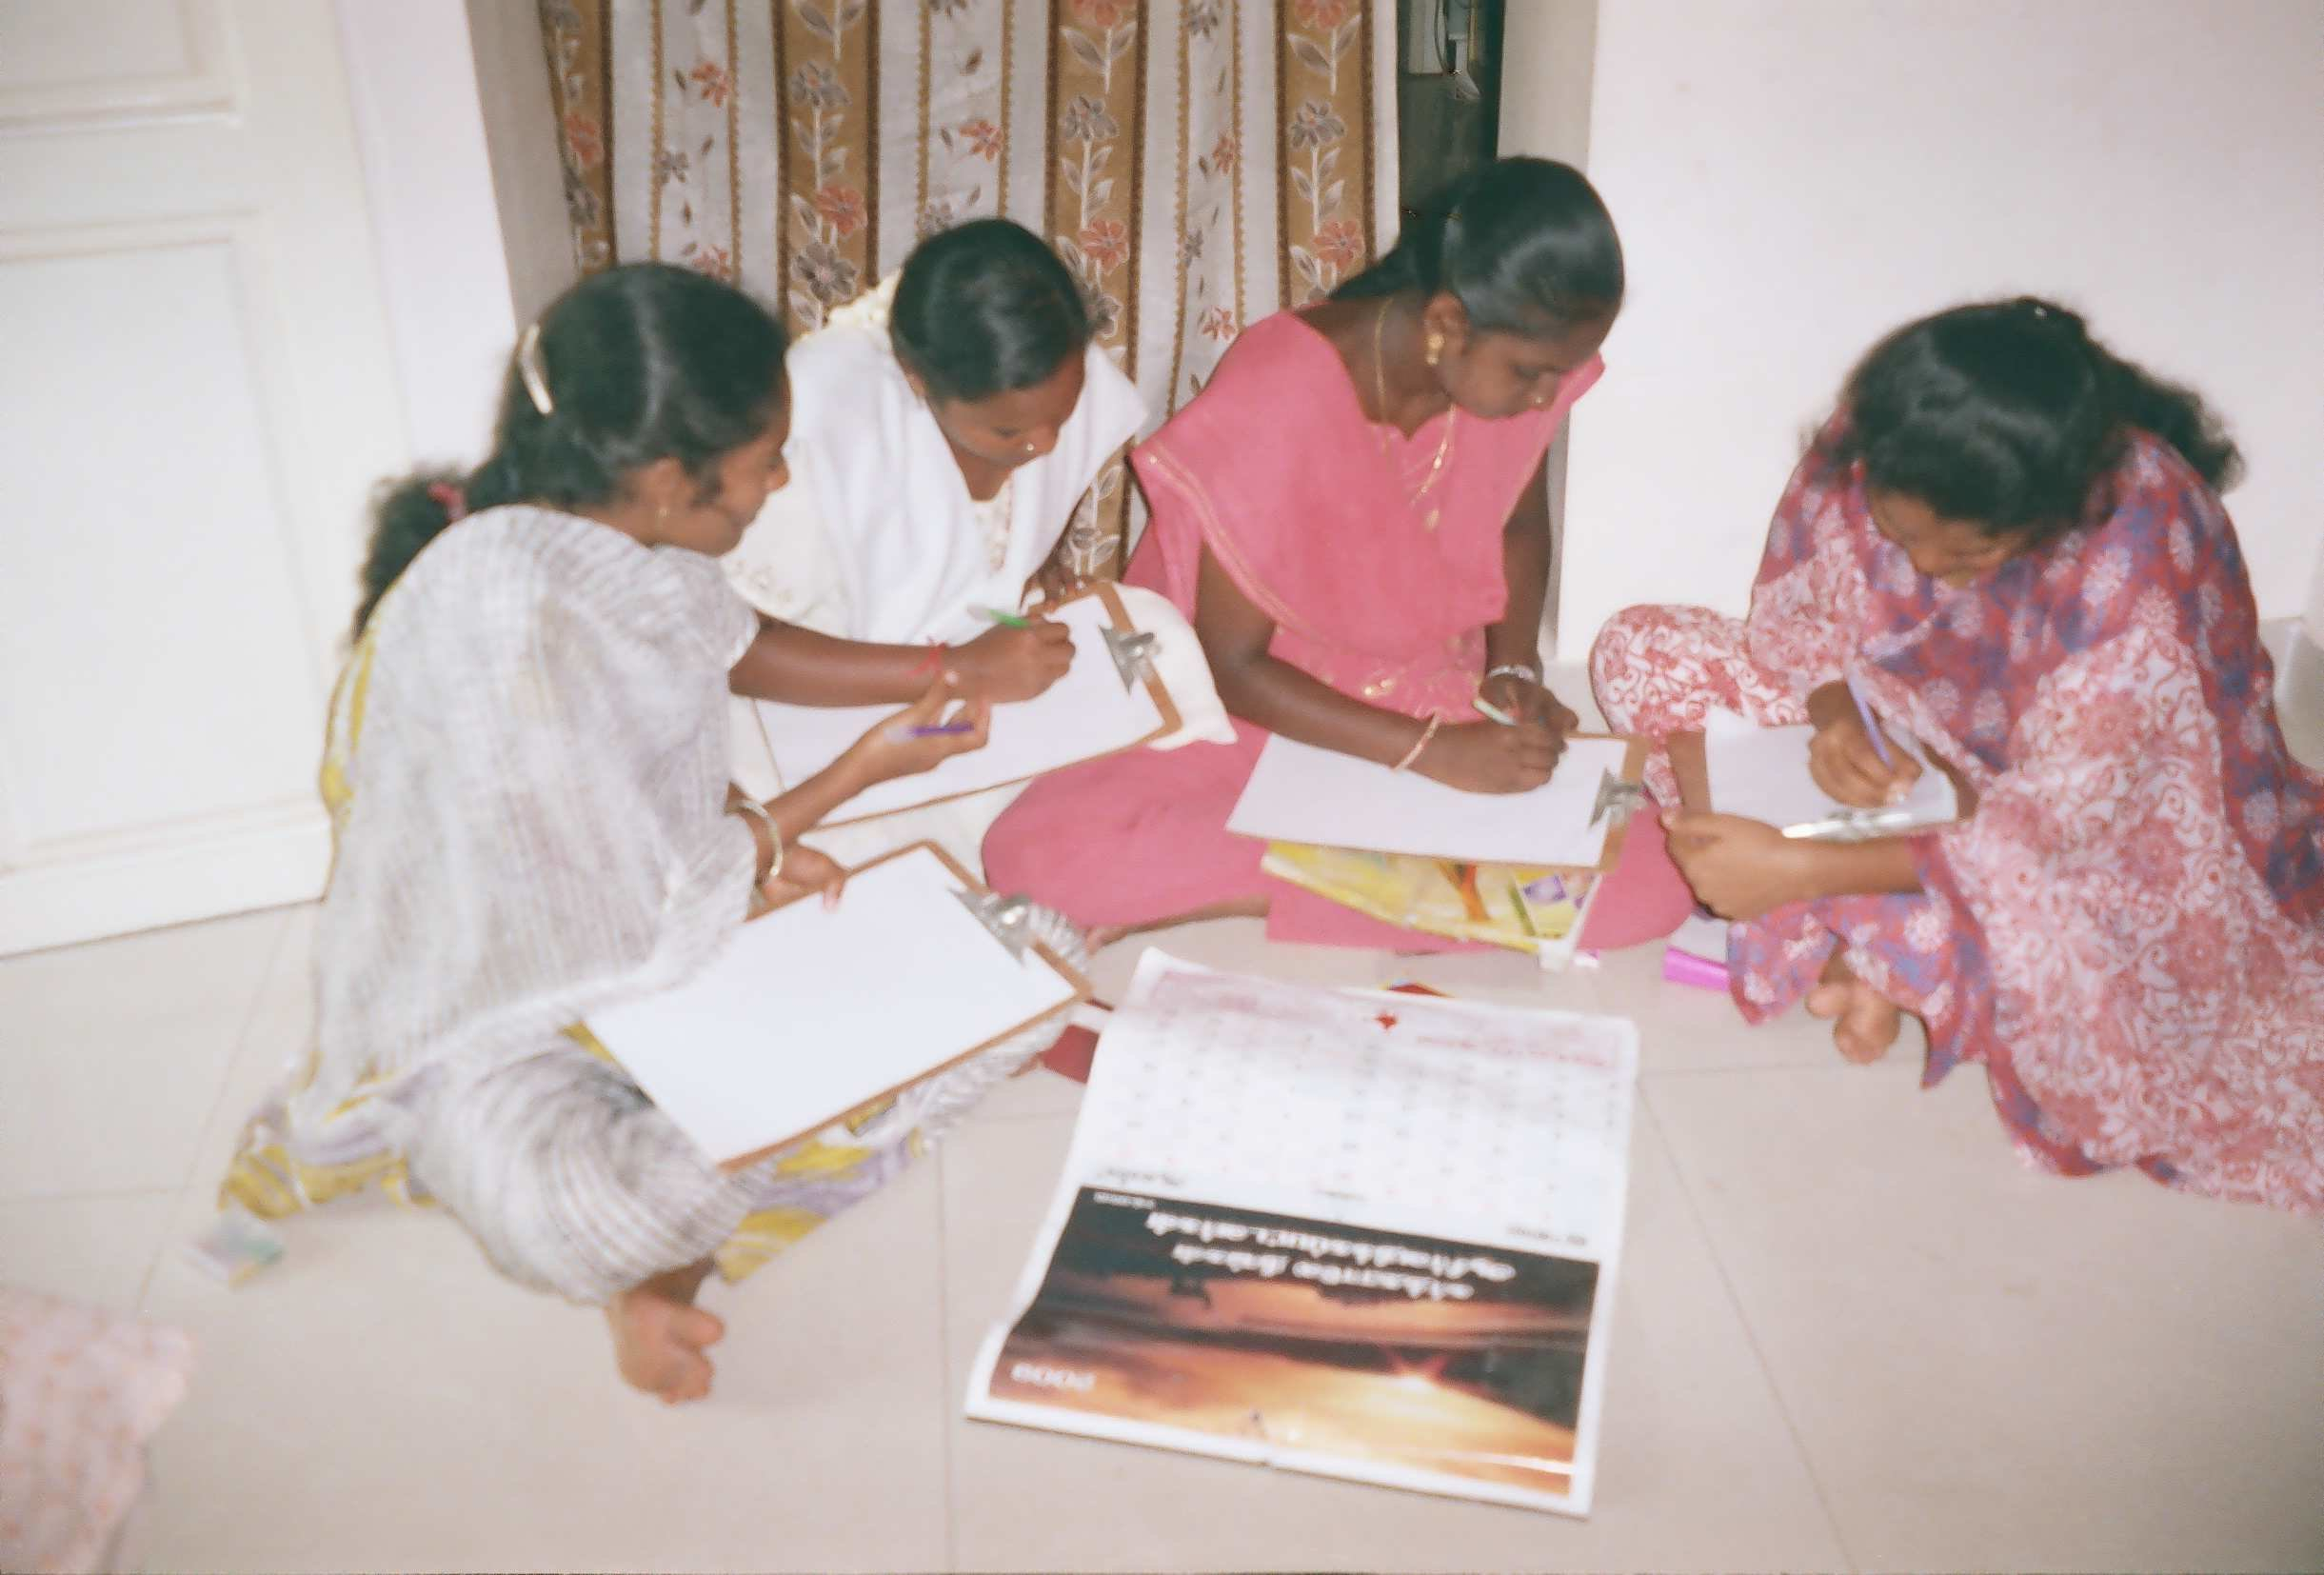 Necessity of Women's education in India